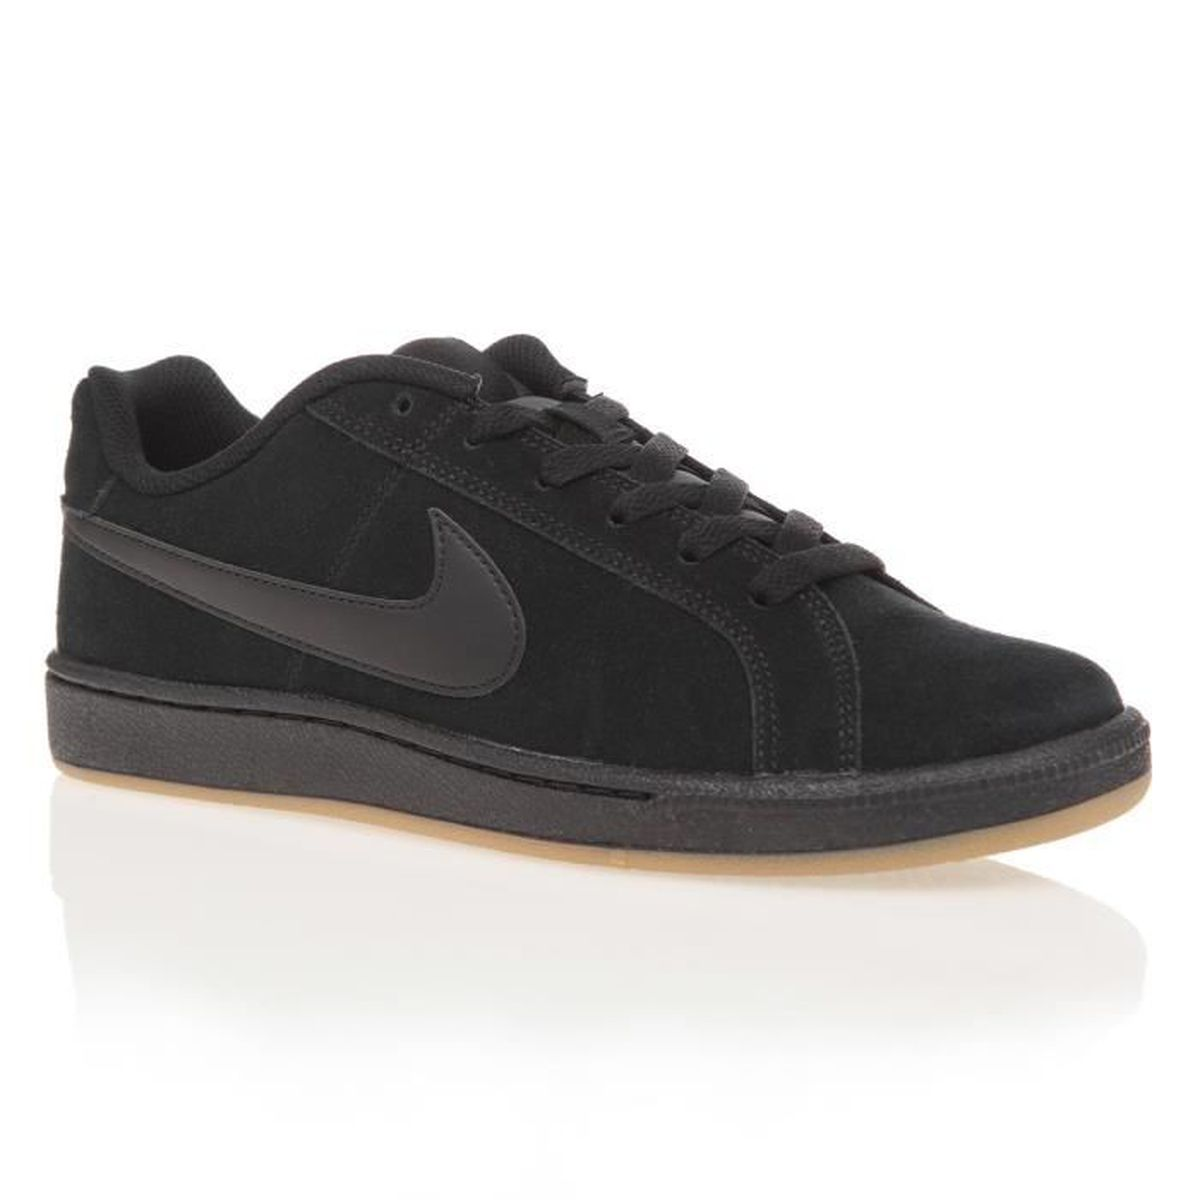 huge discount 1f229 239c8 Chaussure homme nike air